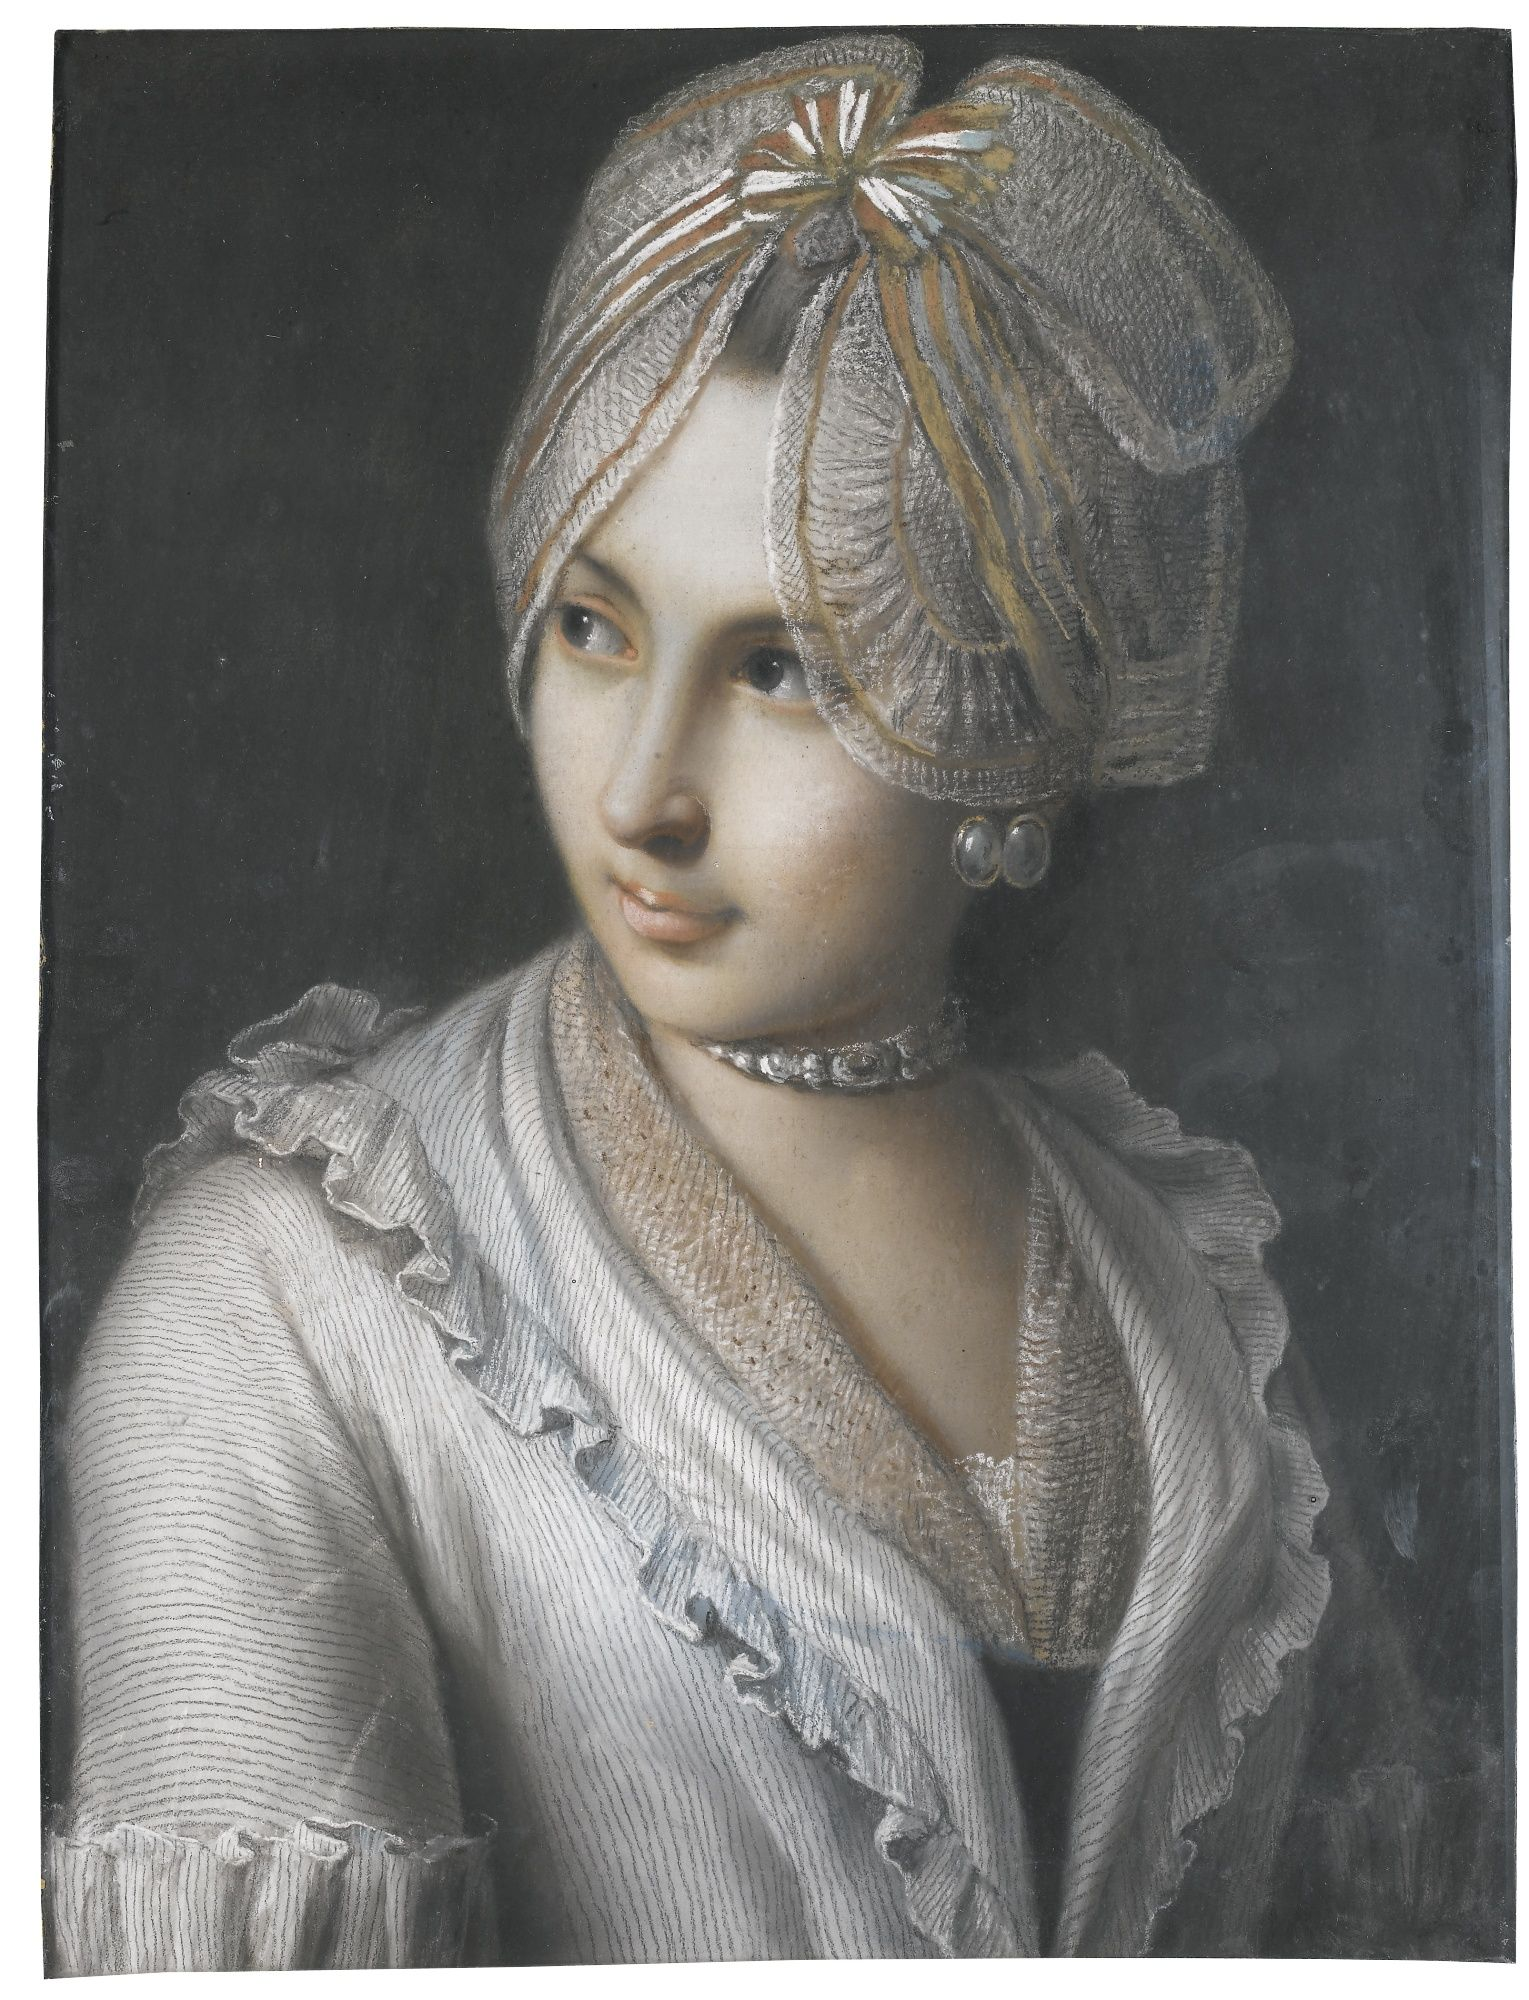 Pietro Antonio Rotari VERONA 1707 - 1762 ST PETERSBURG PORTRAIT OF A YOUNG LADY WITH A LACE CAP AND JEWELLED CHOKER